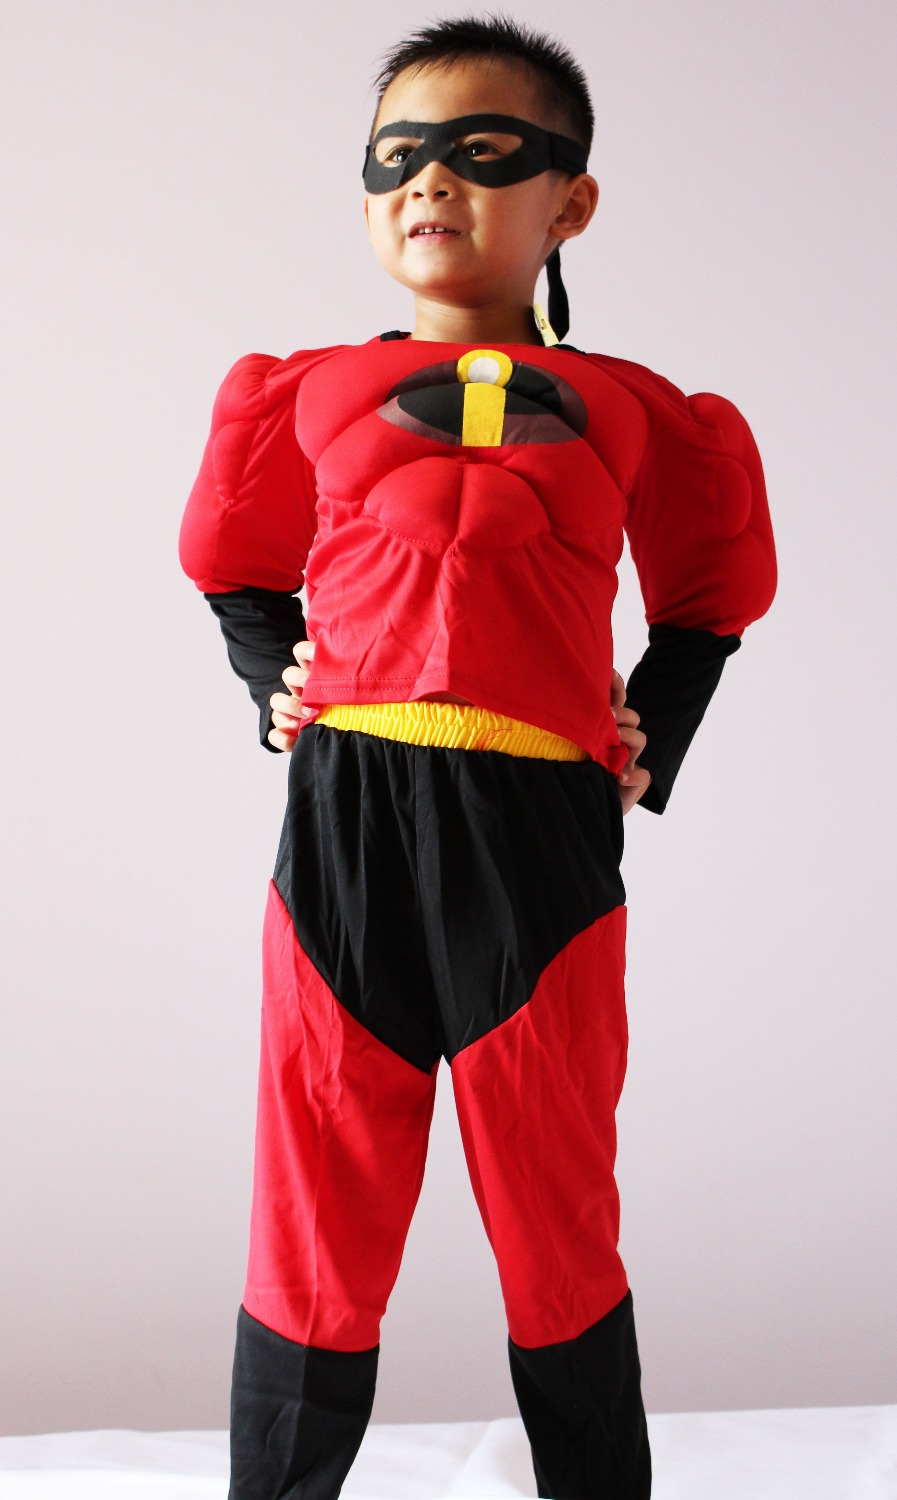 3-7 years Party Kids Comic Marvel The incredibles Bob Muscle Halloween Costume,boy roll play clothing 16818#